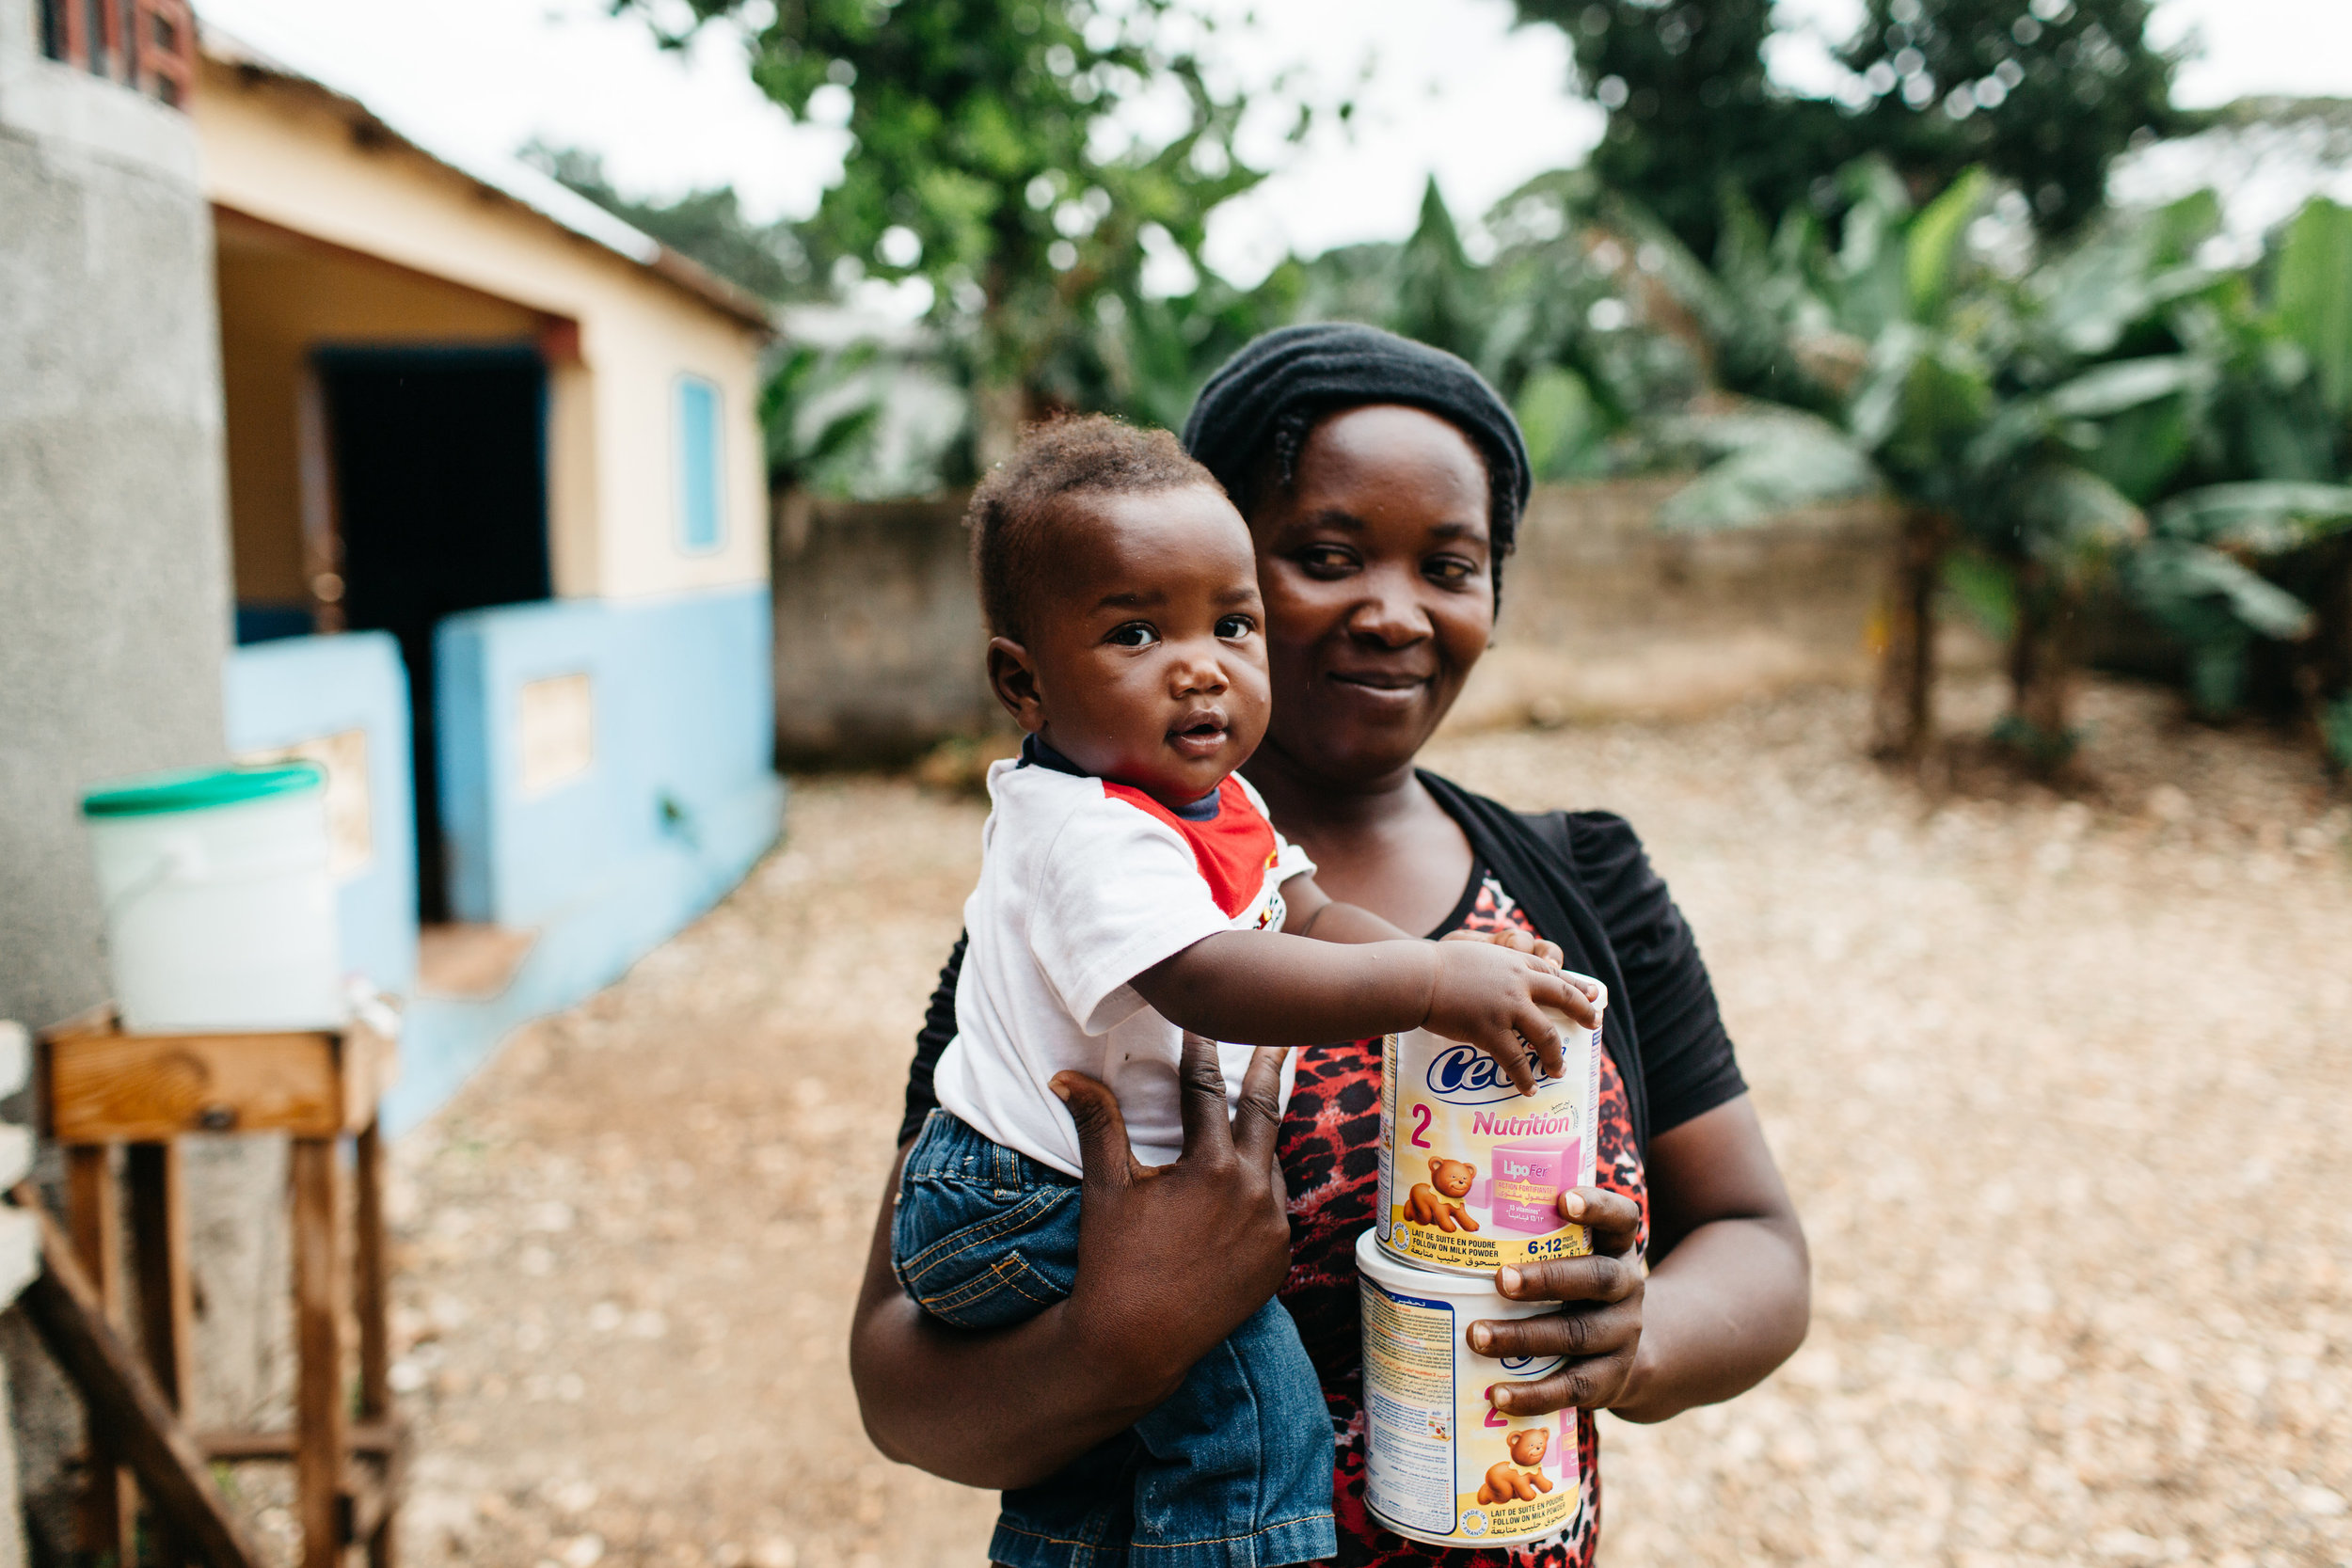 Formula Support - In cases where breastfeeding is medically impossible or mothers have died, we provide formula to help families provide nourishment to their baby. Each week, caregivers come to receive a wellness check, formula, and education.